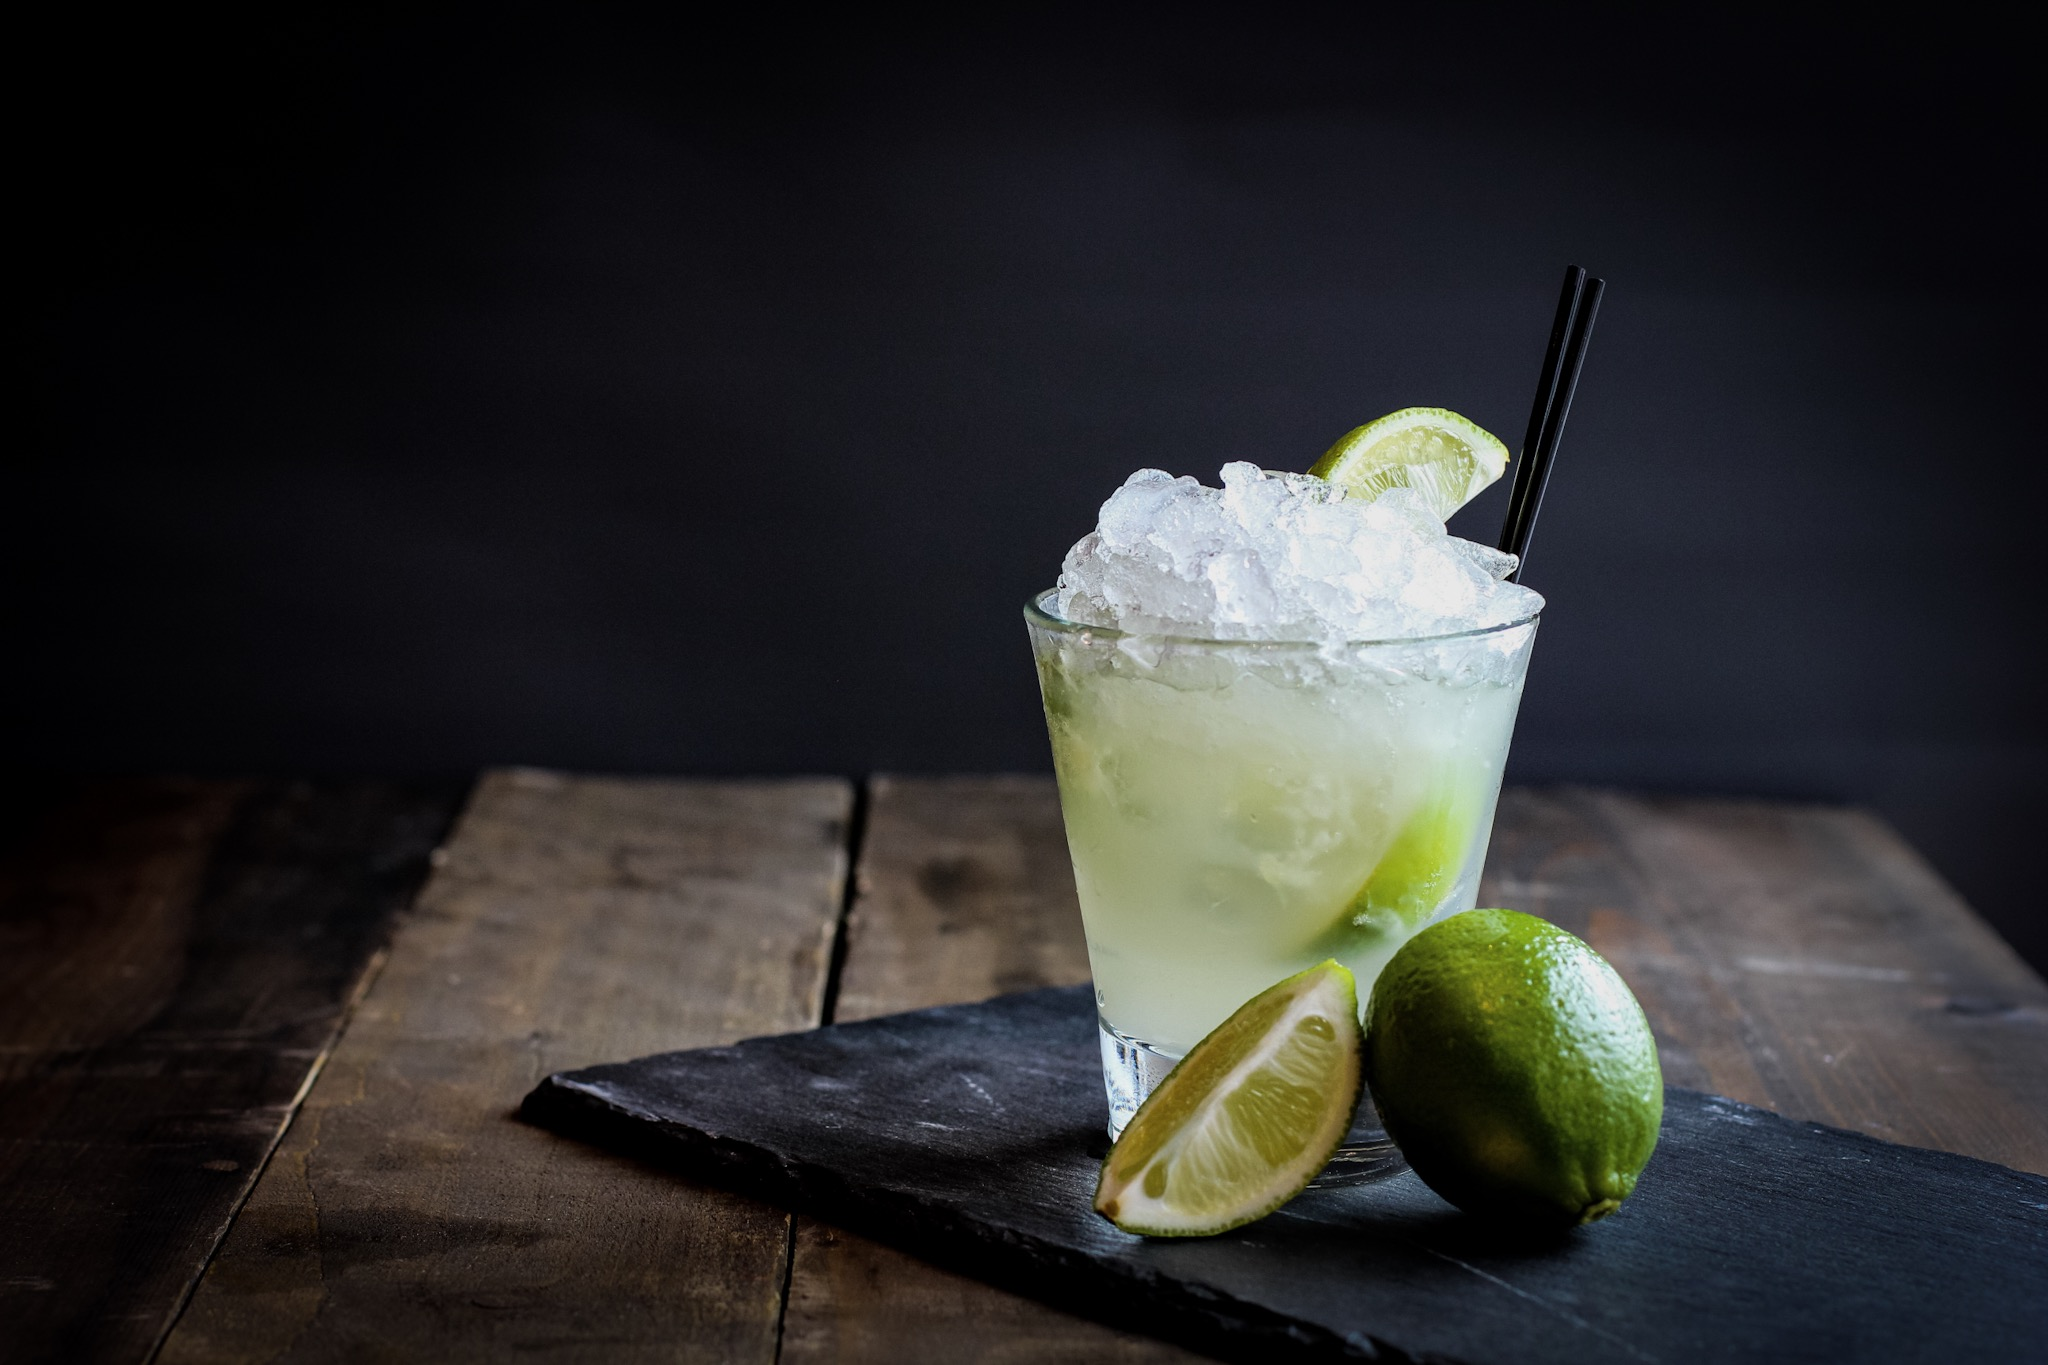 Our traditional Caipirinha